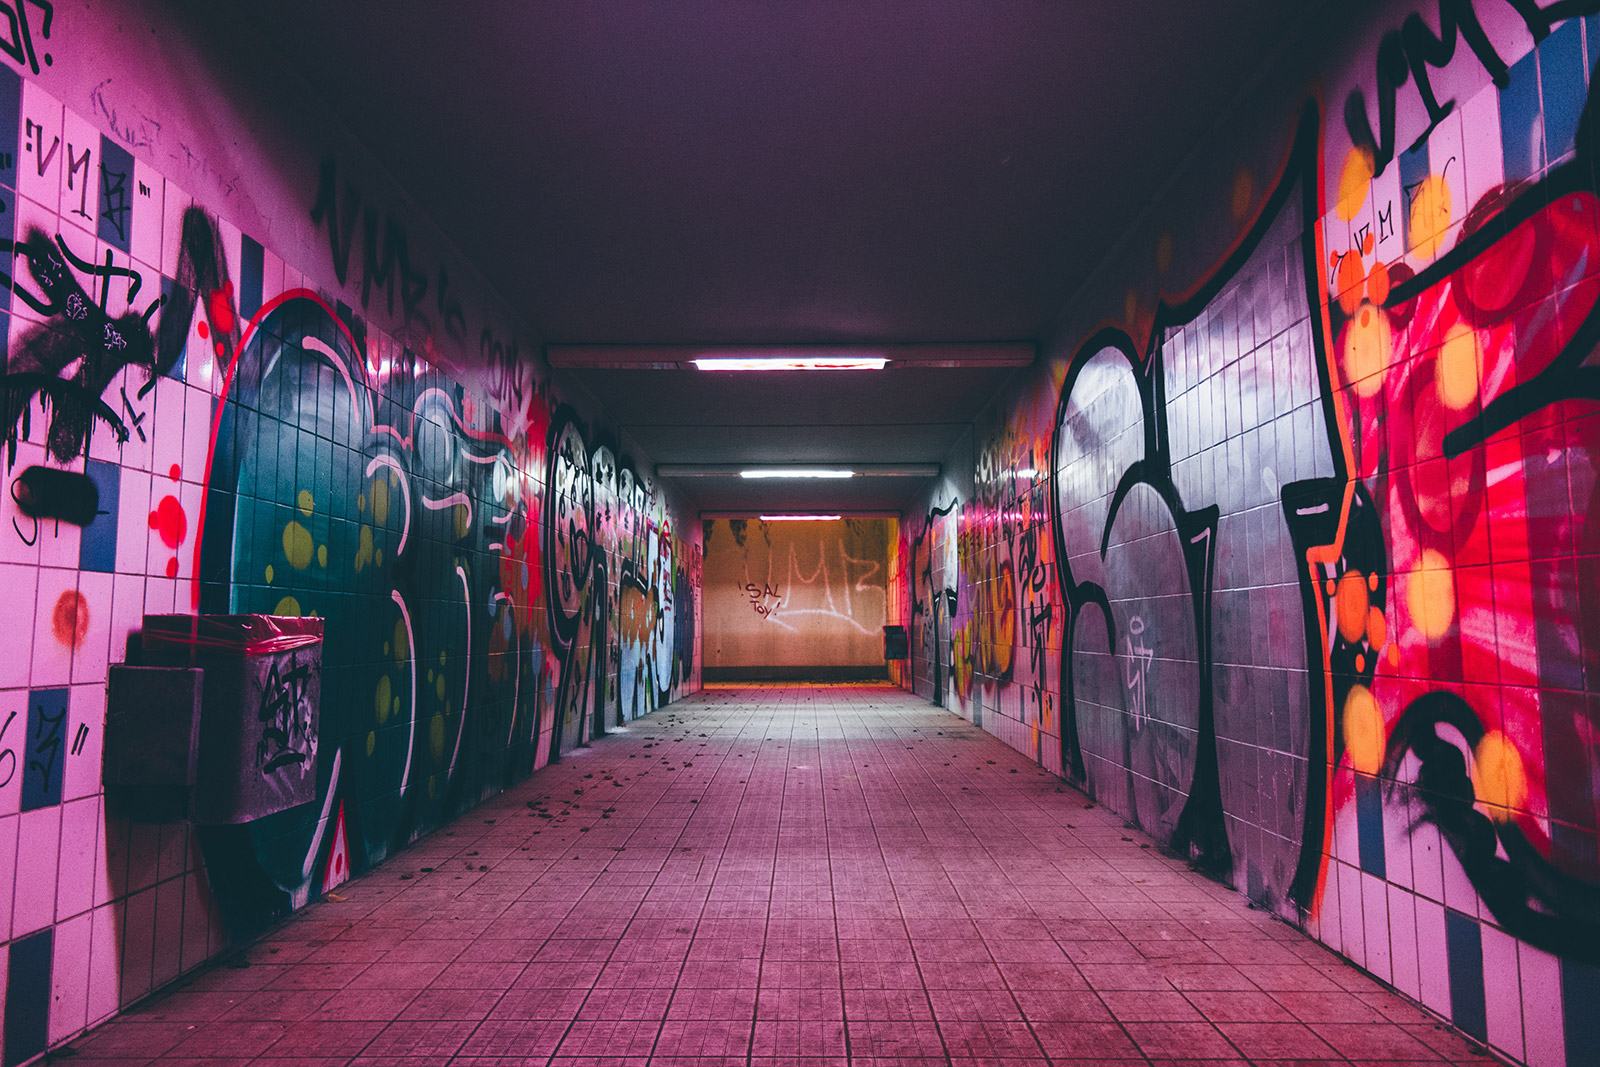 Underpass At Night